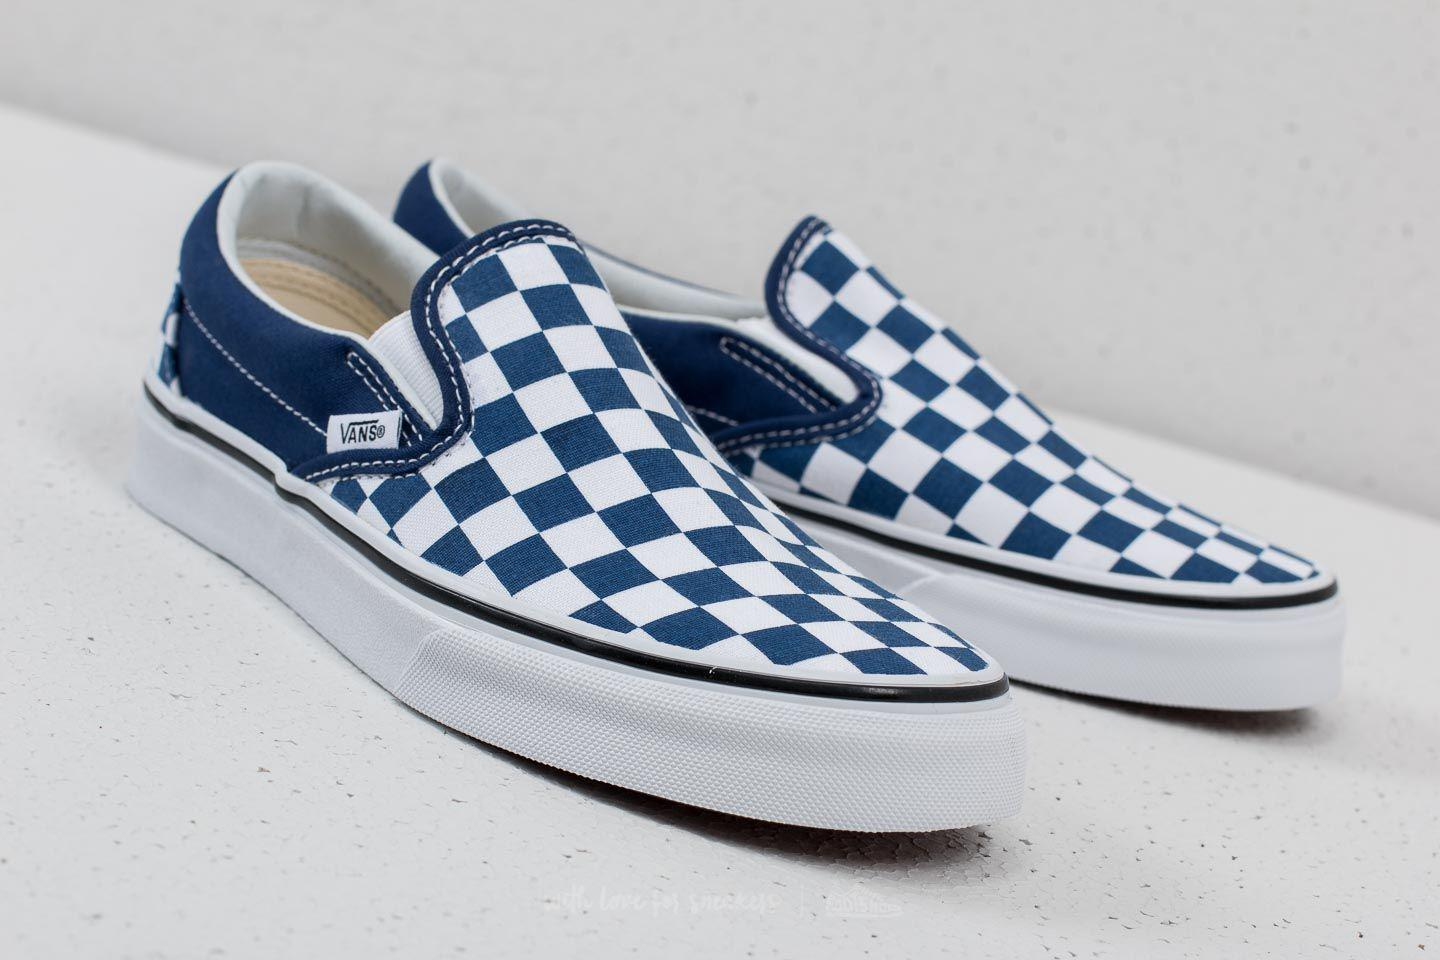 6c1ee8888c4588 Lyst - Vans Classic Slip-on (checkerboard) Estate Blue in Blue for Men